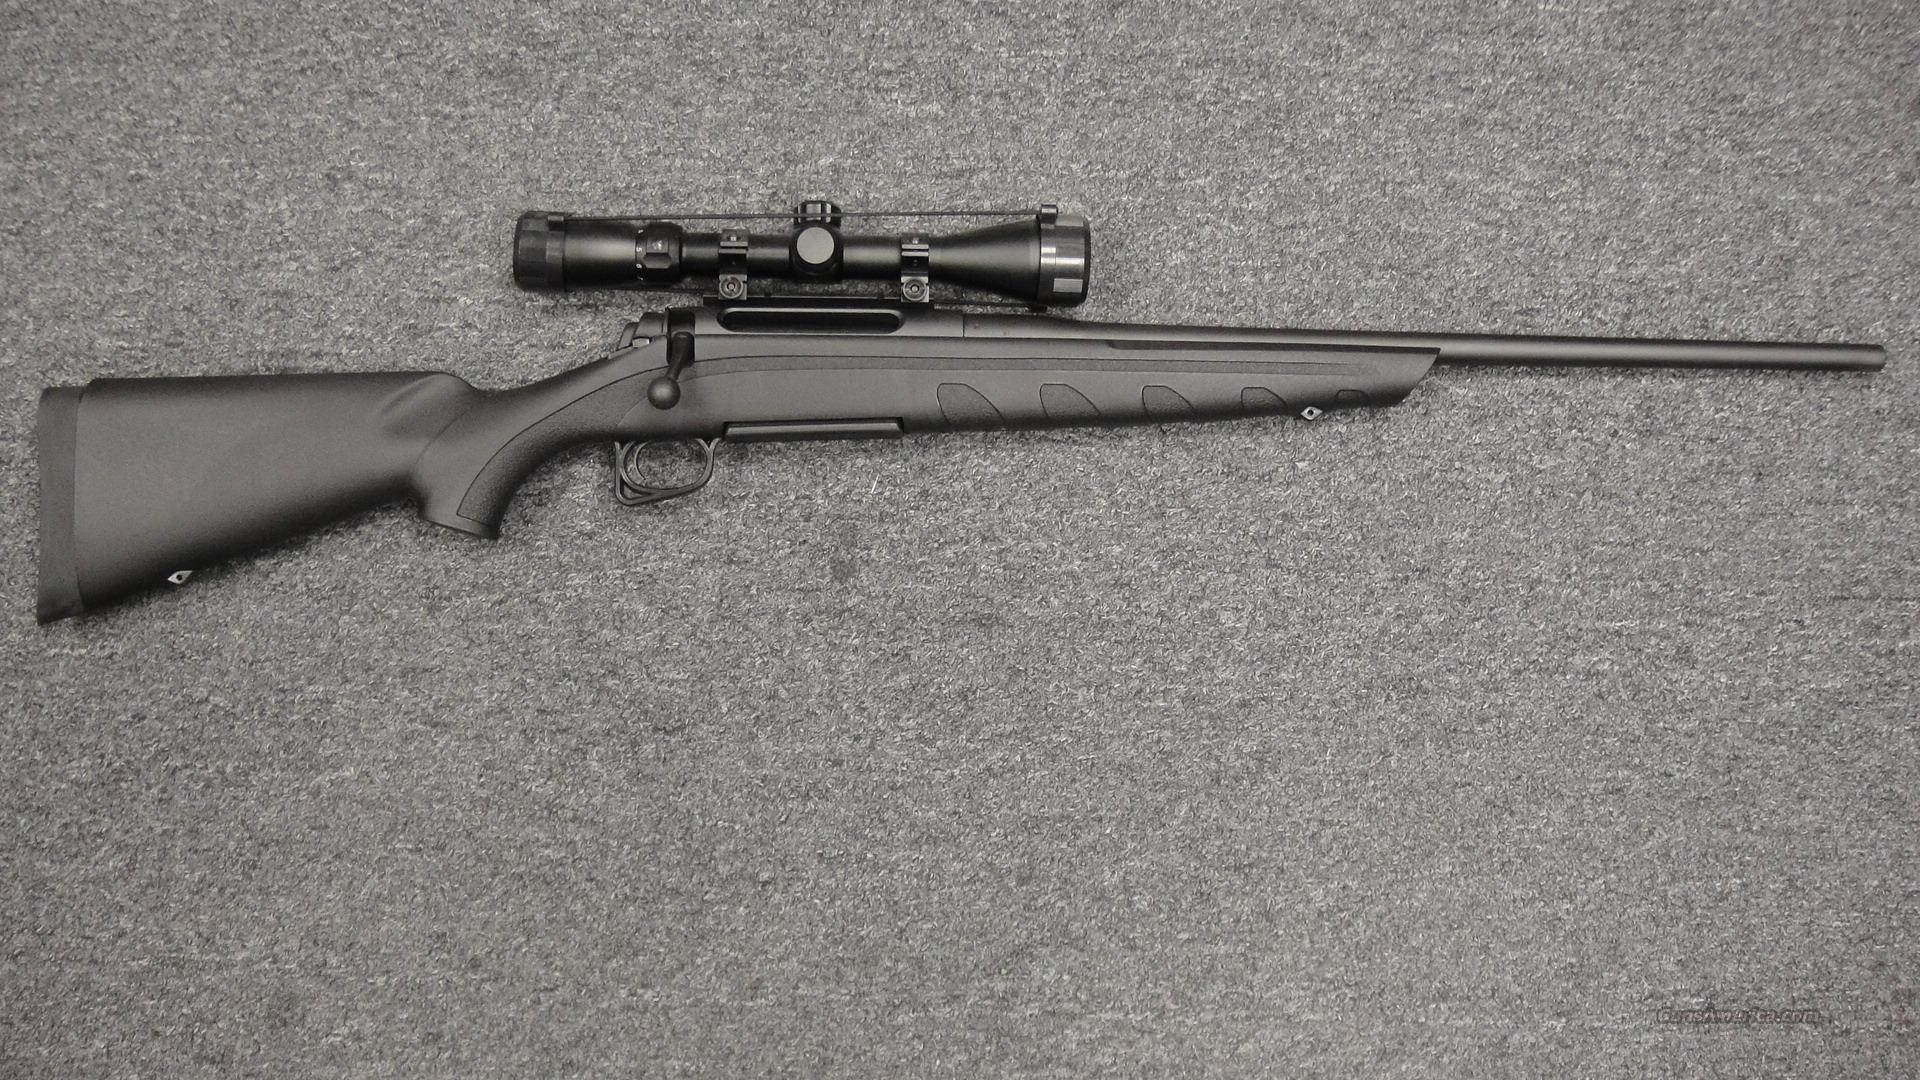 Remington 770 in .7mm-08 for sale